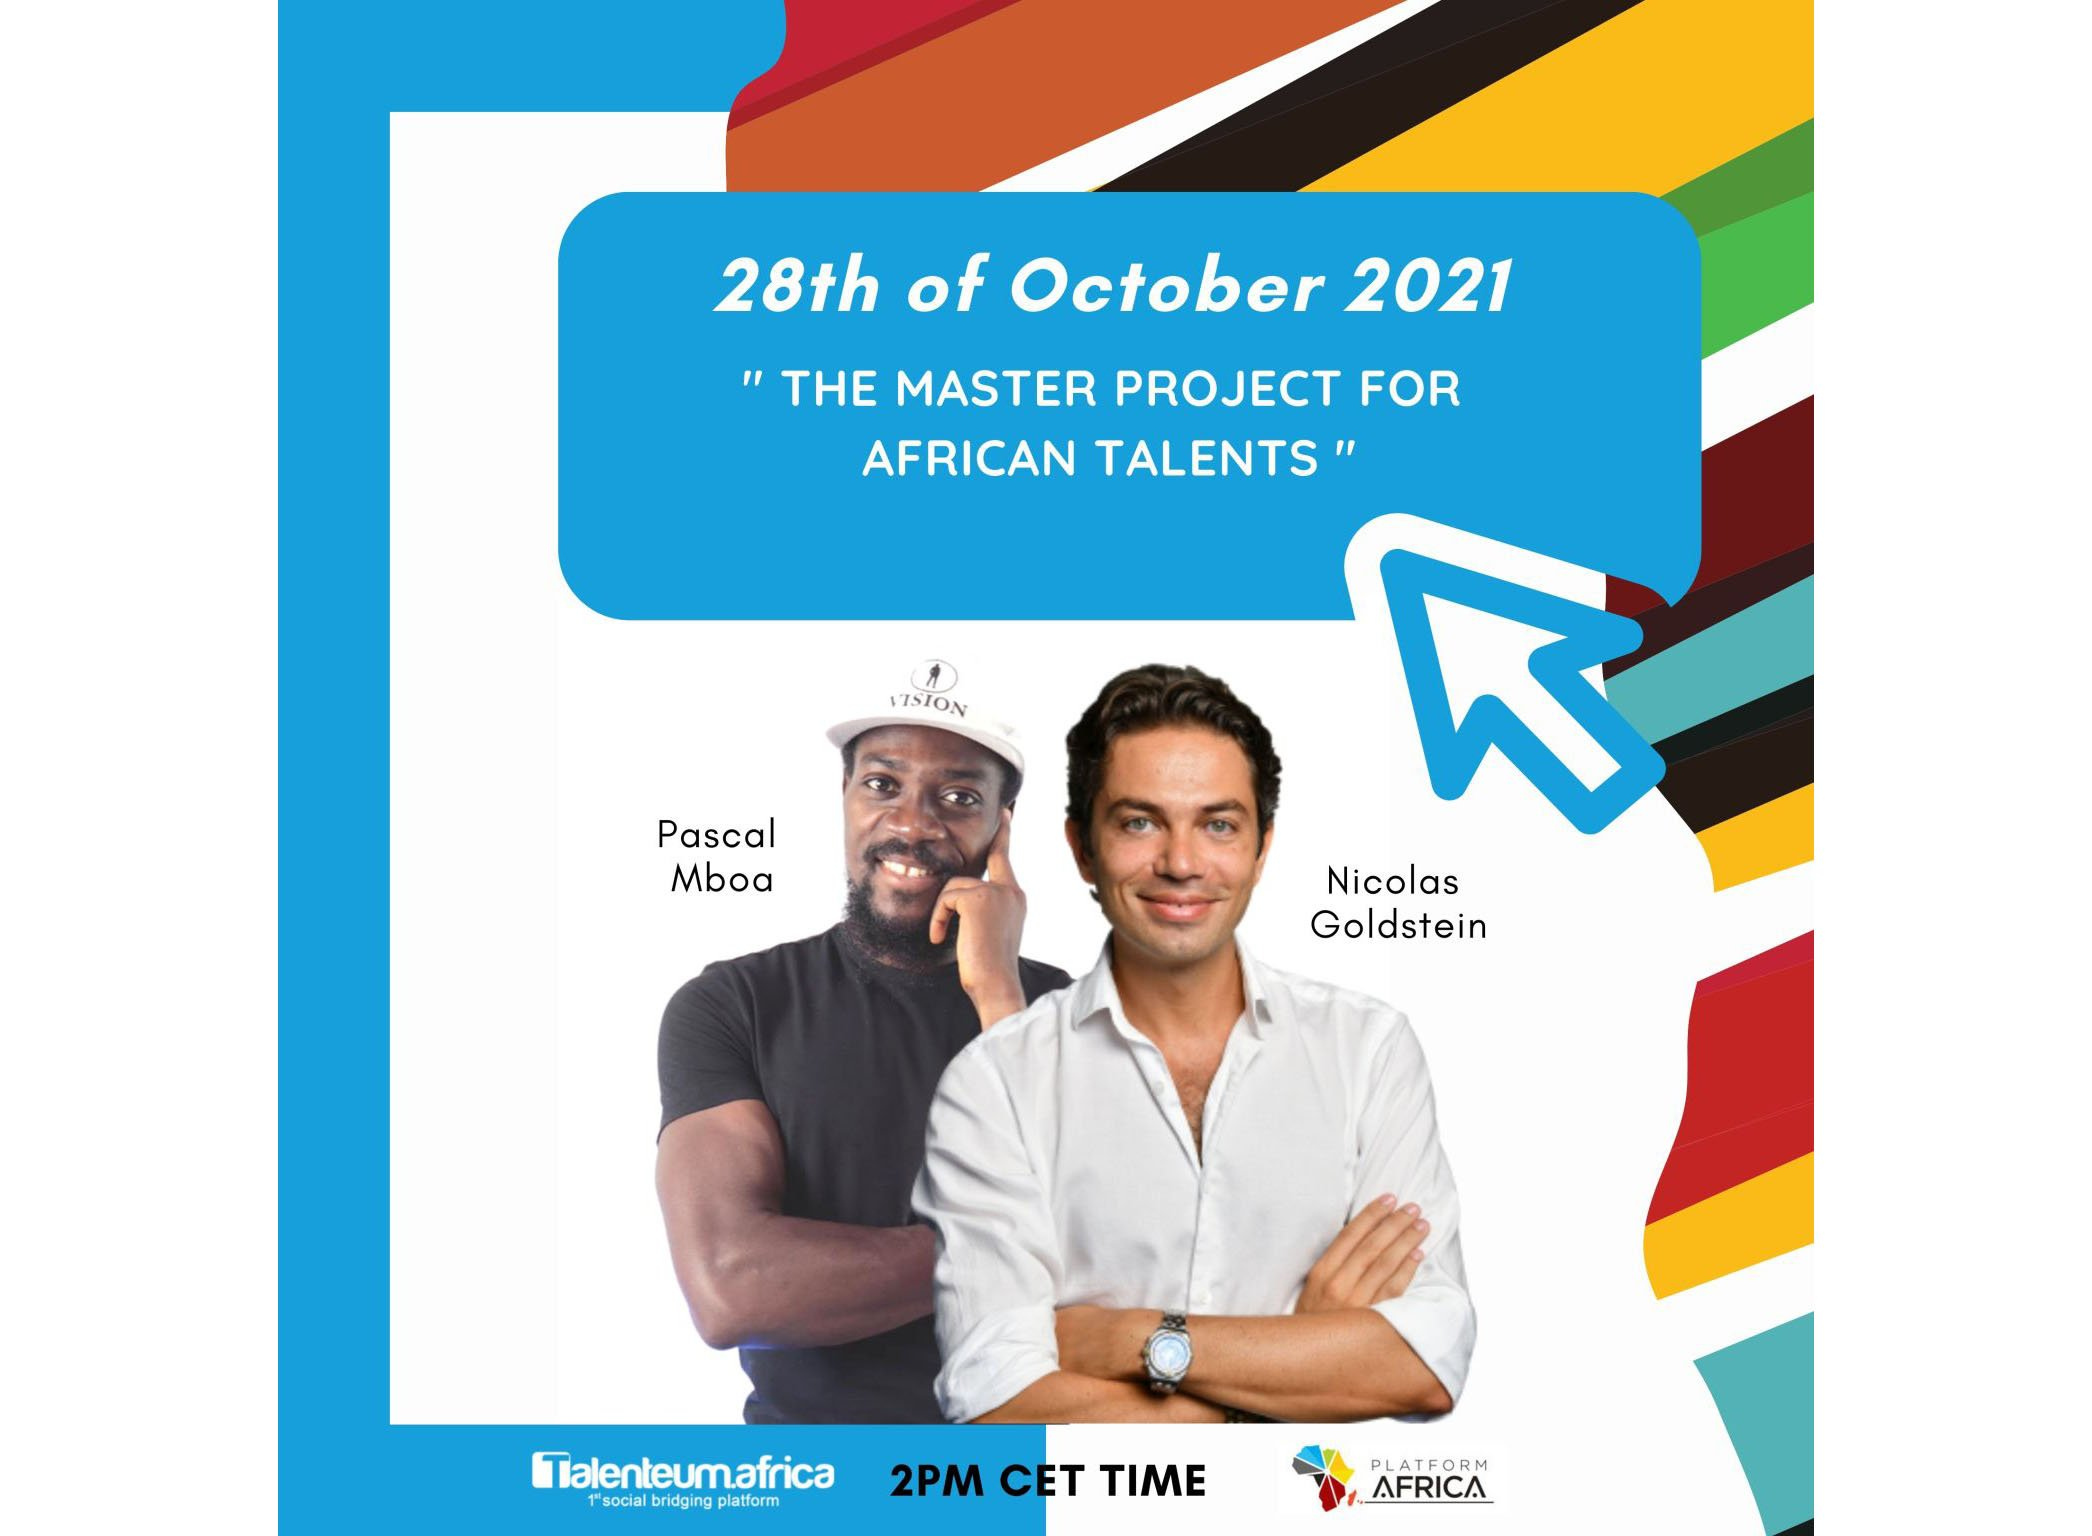 Master Project For African Talents